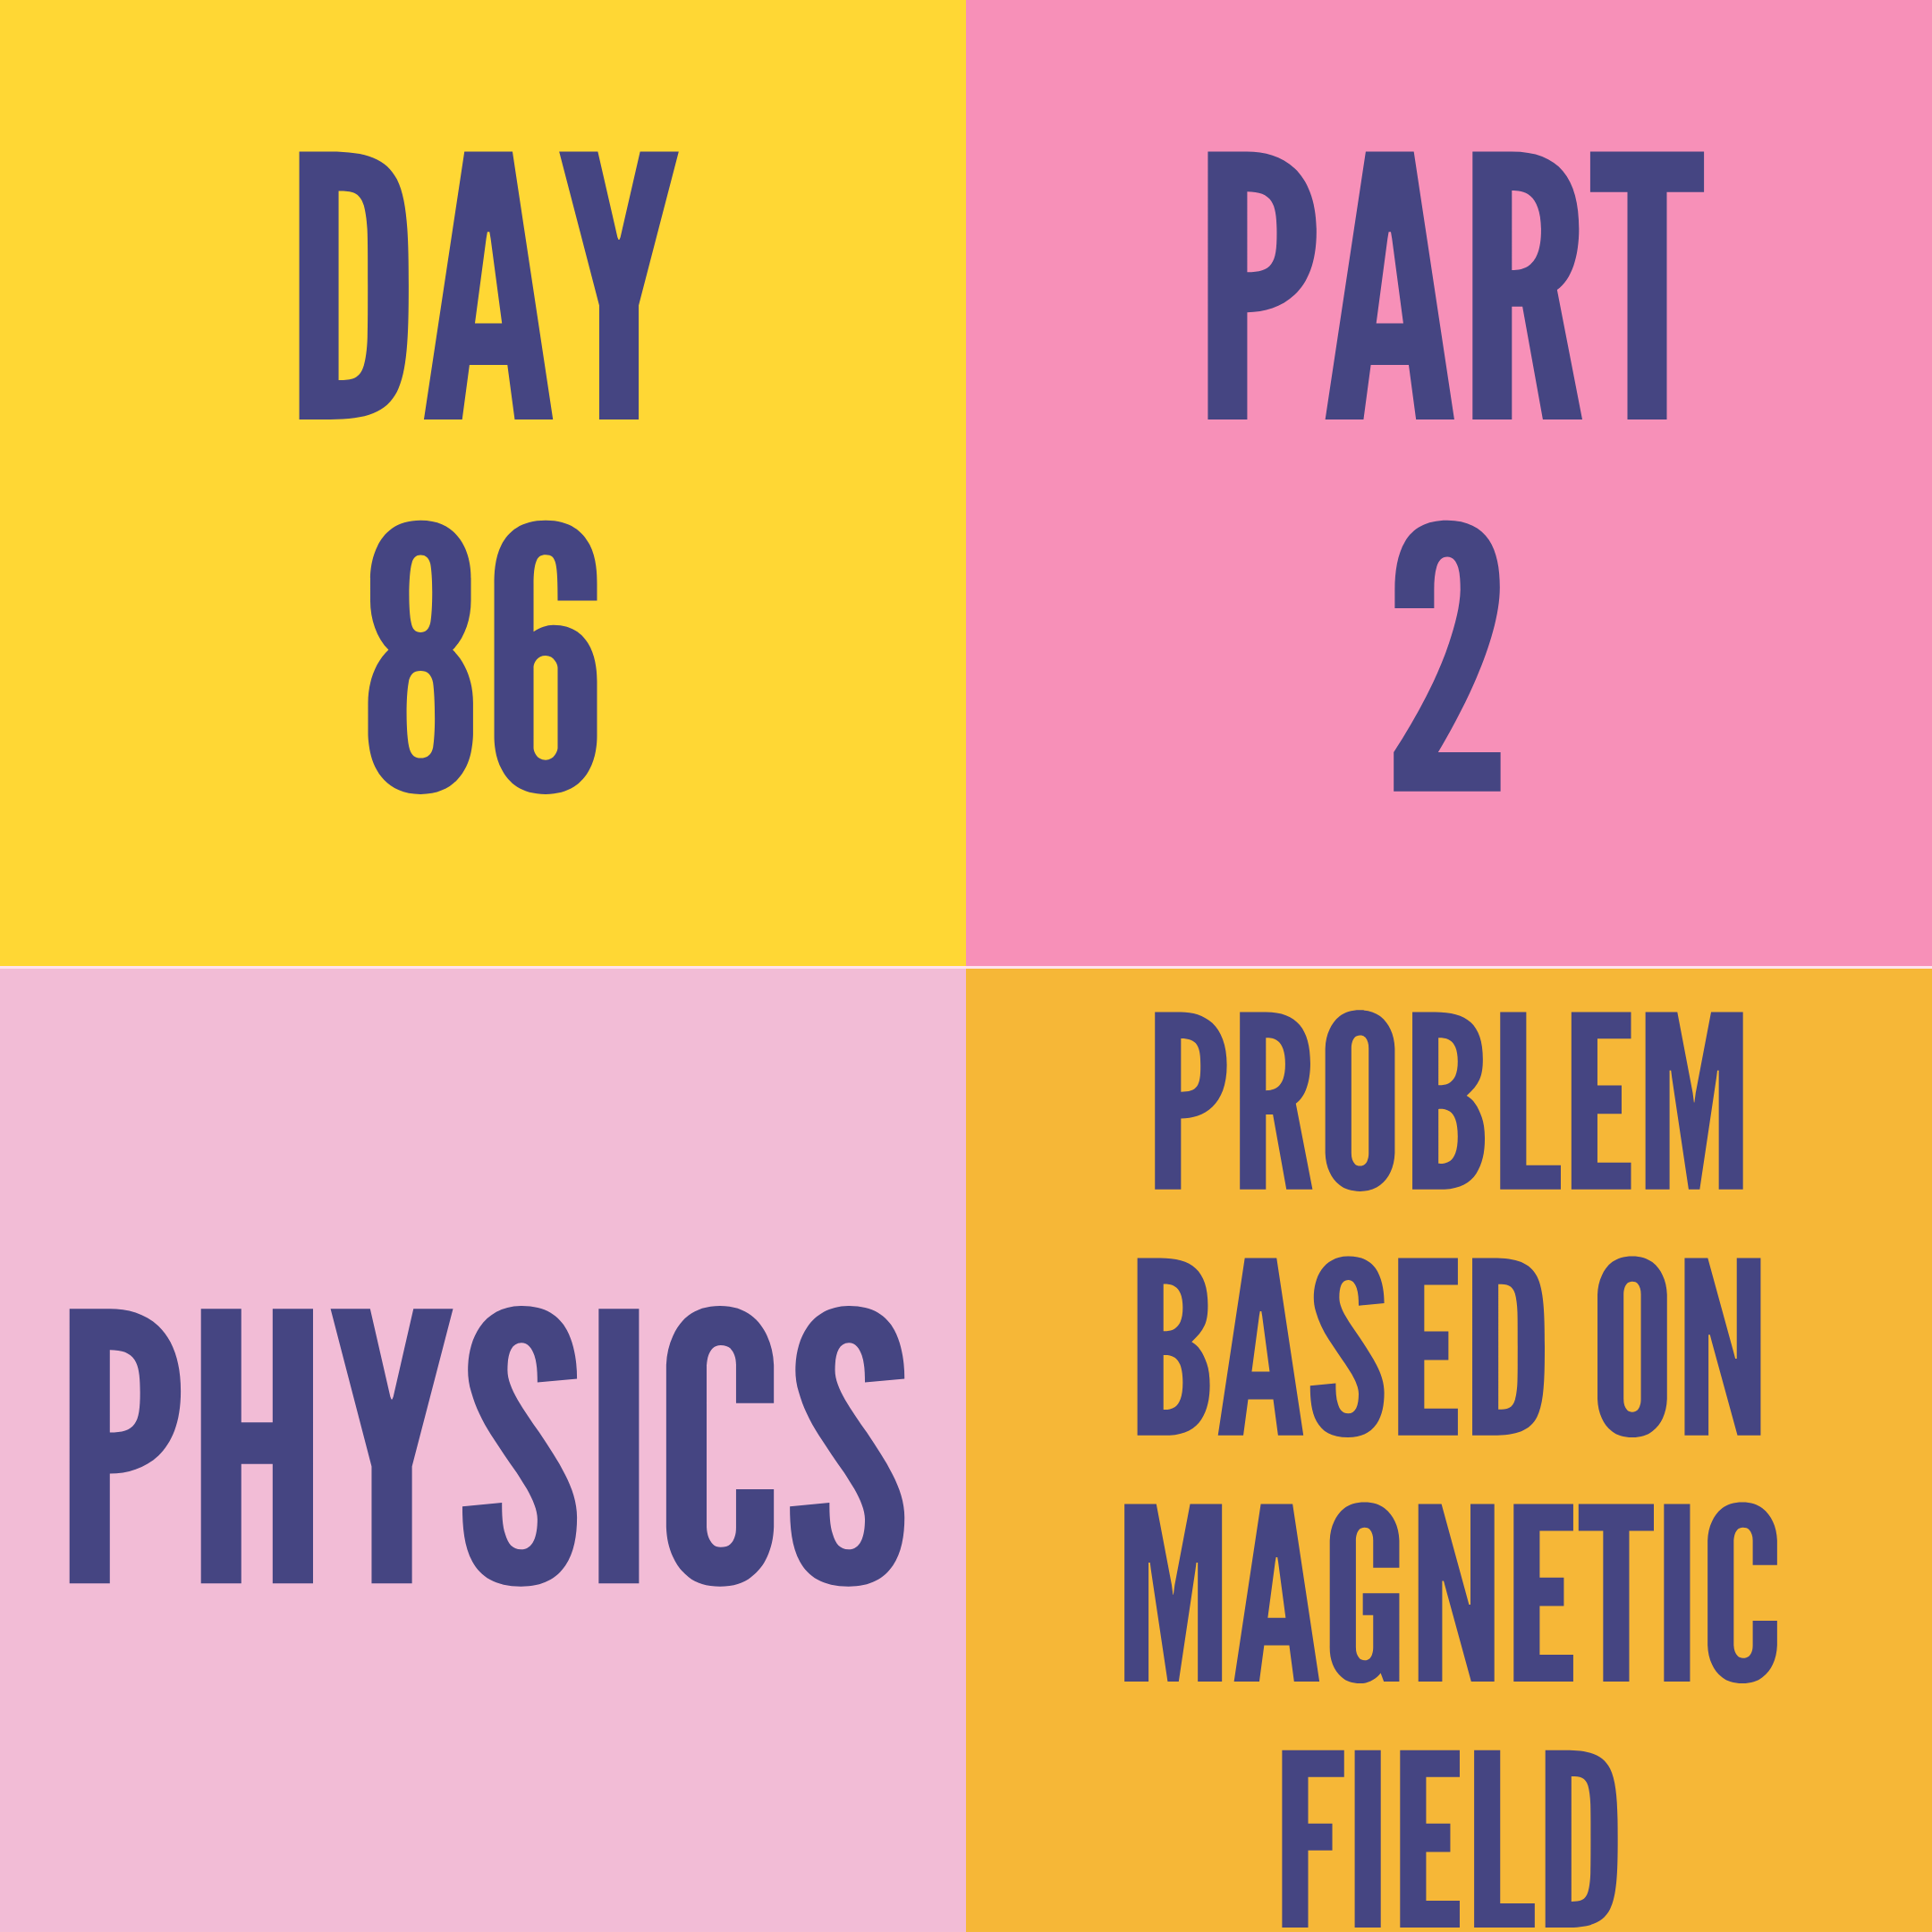 DAY-86 PART-2 PROBLEM BASED ON MAGNETIC FIELD